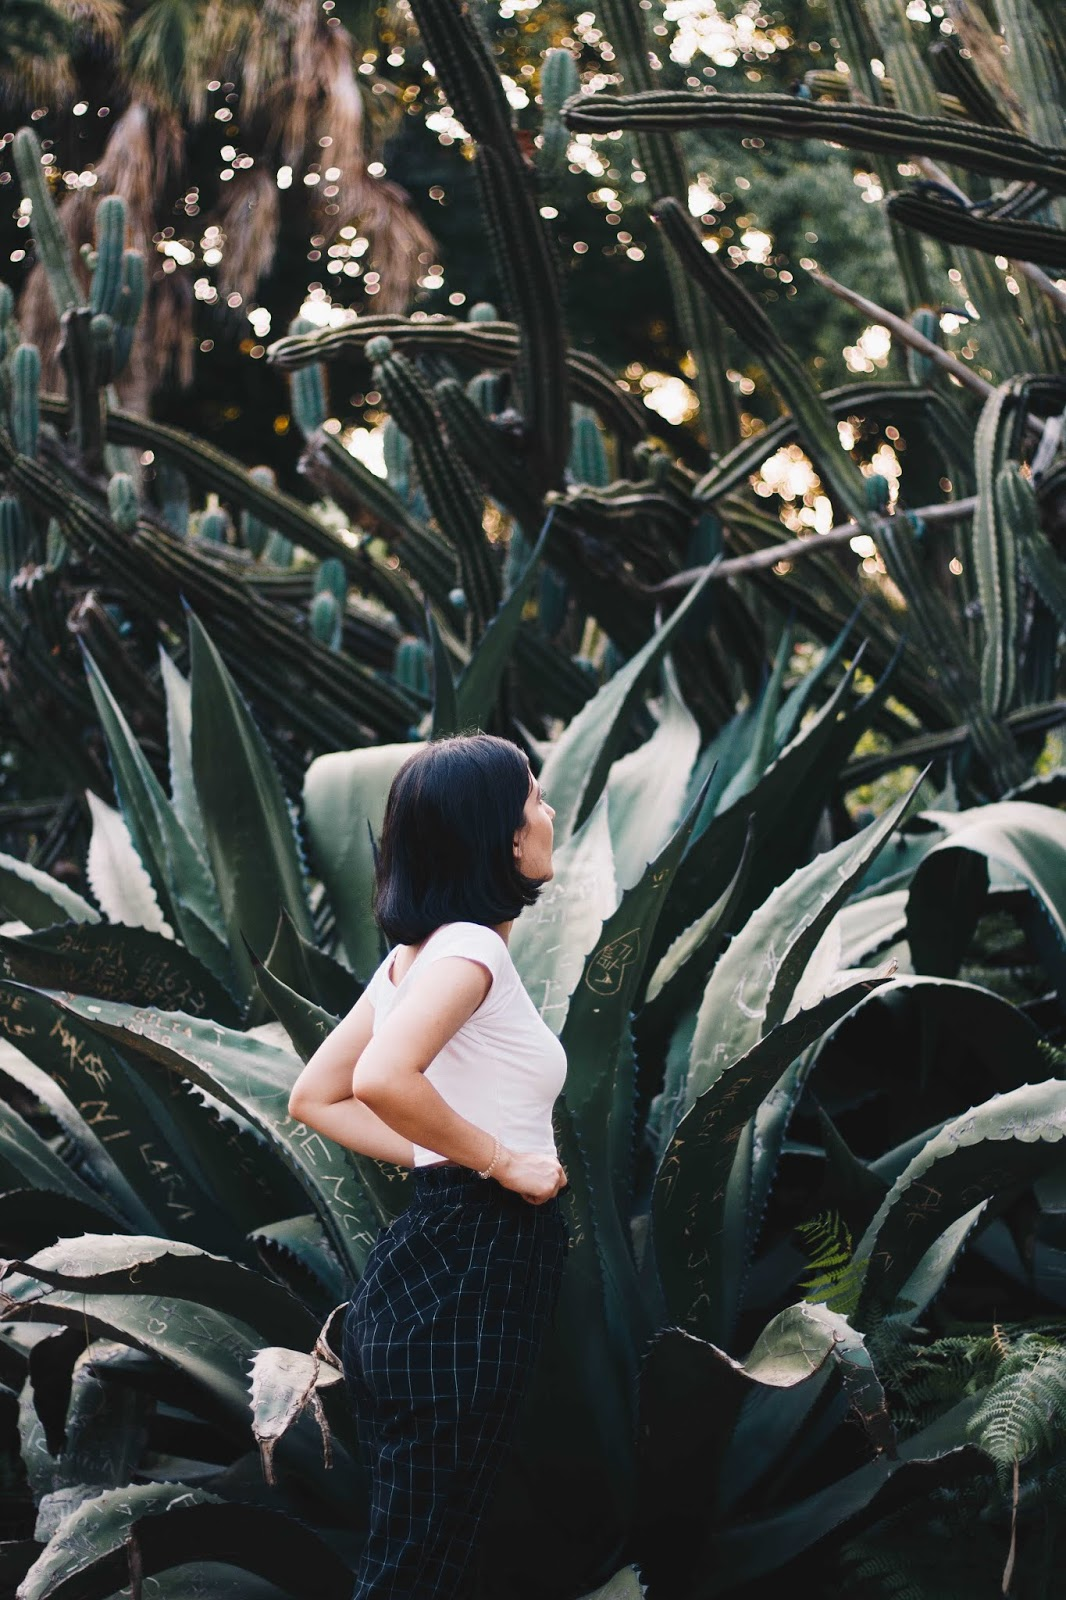 On the last day of August, after the wonderful picnic with Embelleze, Daniela (Dezassete) did magic again. The scenery is part of Jardim da Estrela in Lisbon, and it could not be more perfect. The aesthetic of the cactus was calling for us, and how cool that it matched perfectly with my very basic and minimalist outfit? Click to see more photos!